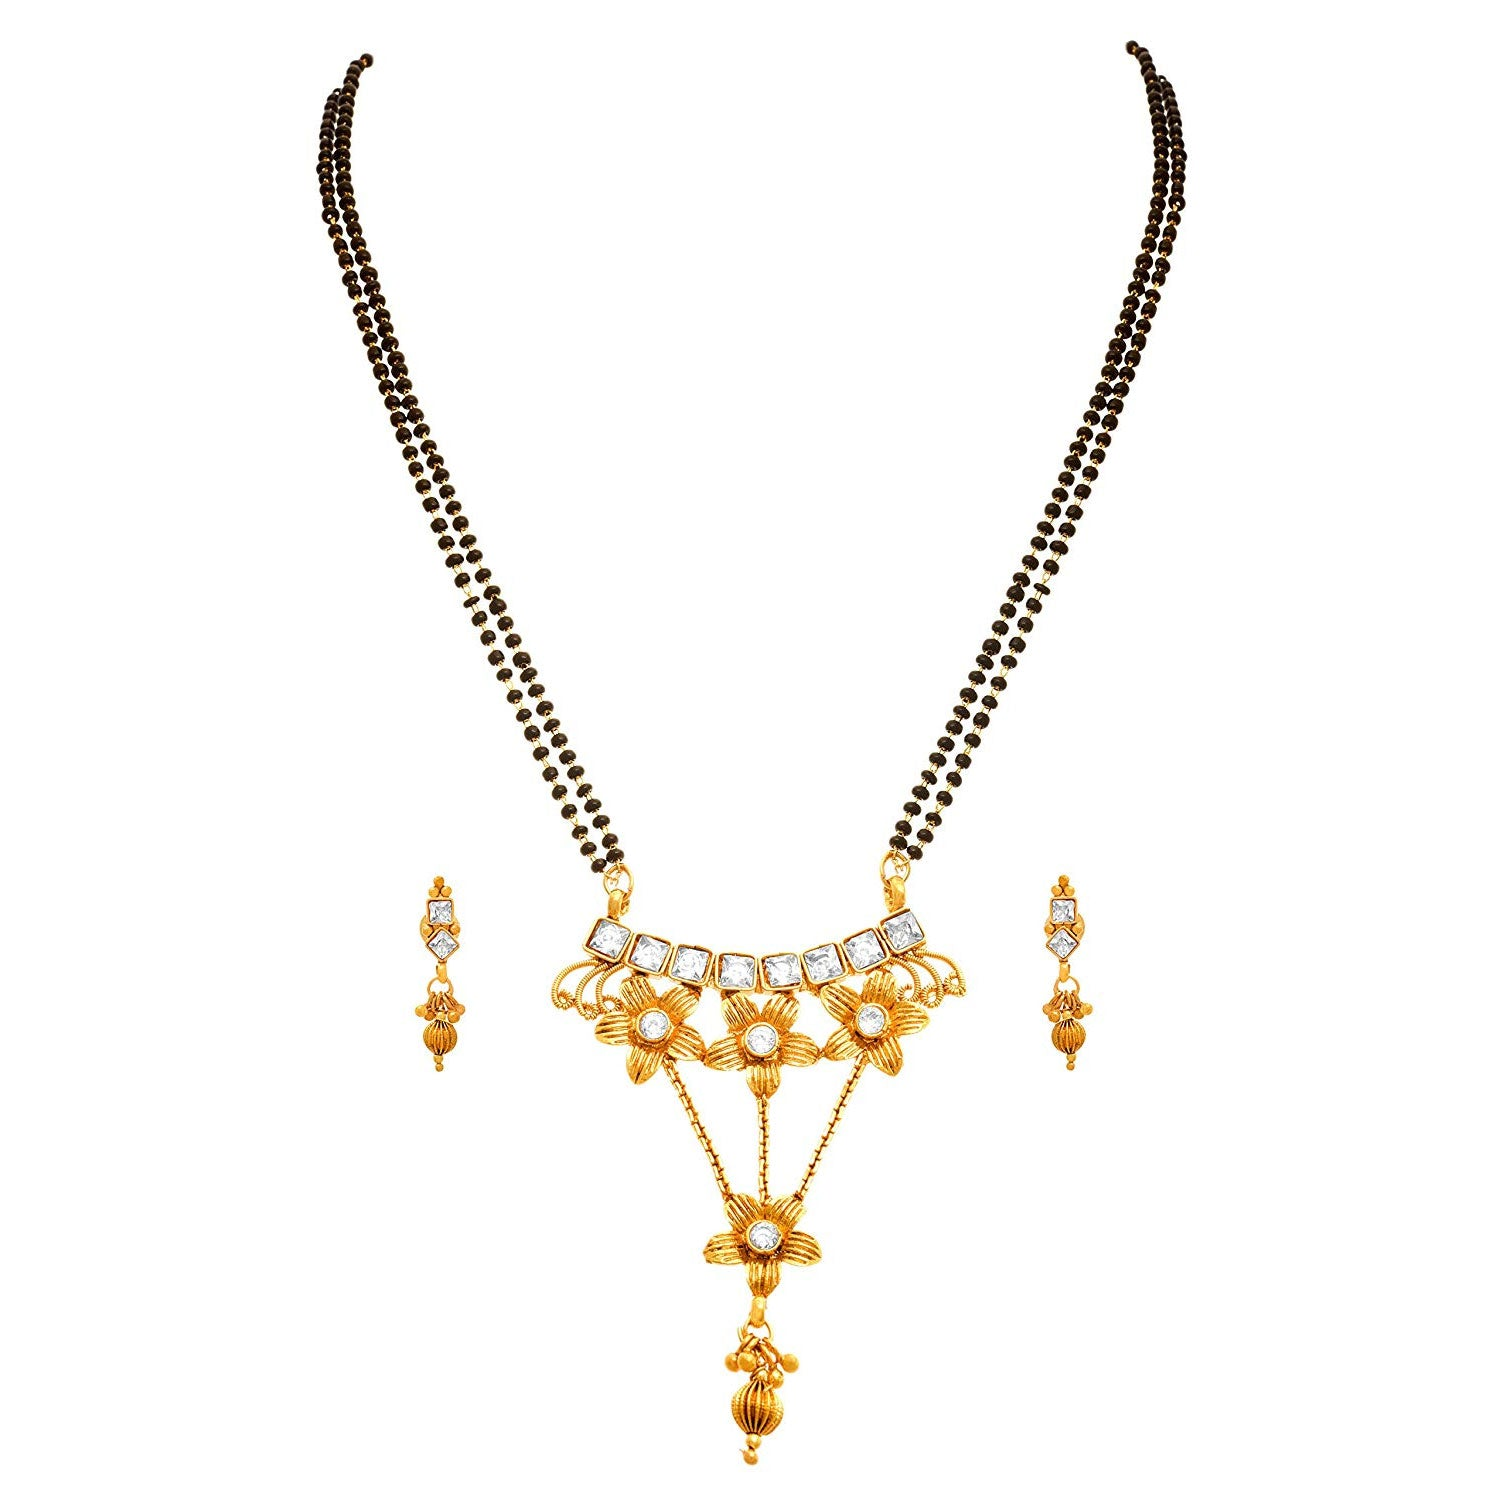 JFL - Traditional Ethnic One Gram Gold Plated Cz American Diamond Designer Mangalsutra Set With Black Beaded Chain For Women.